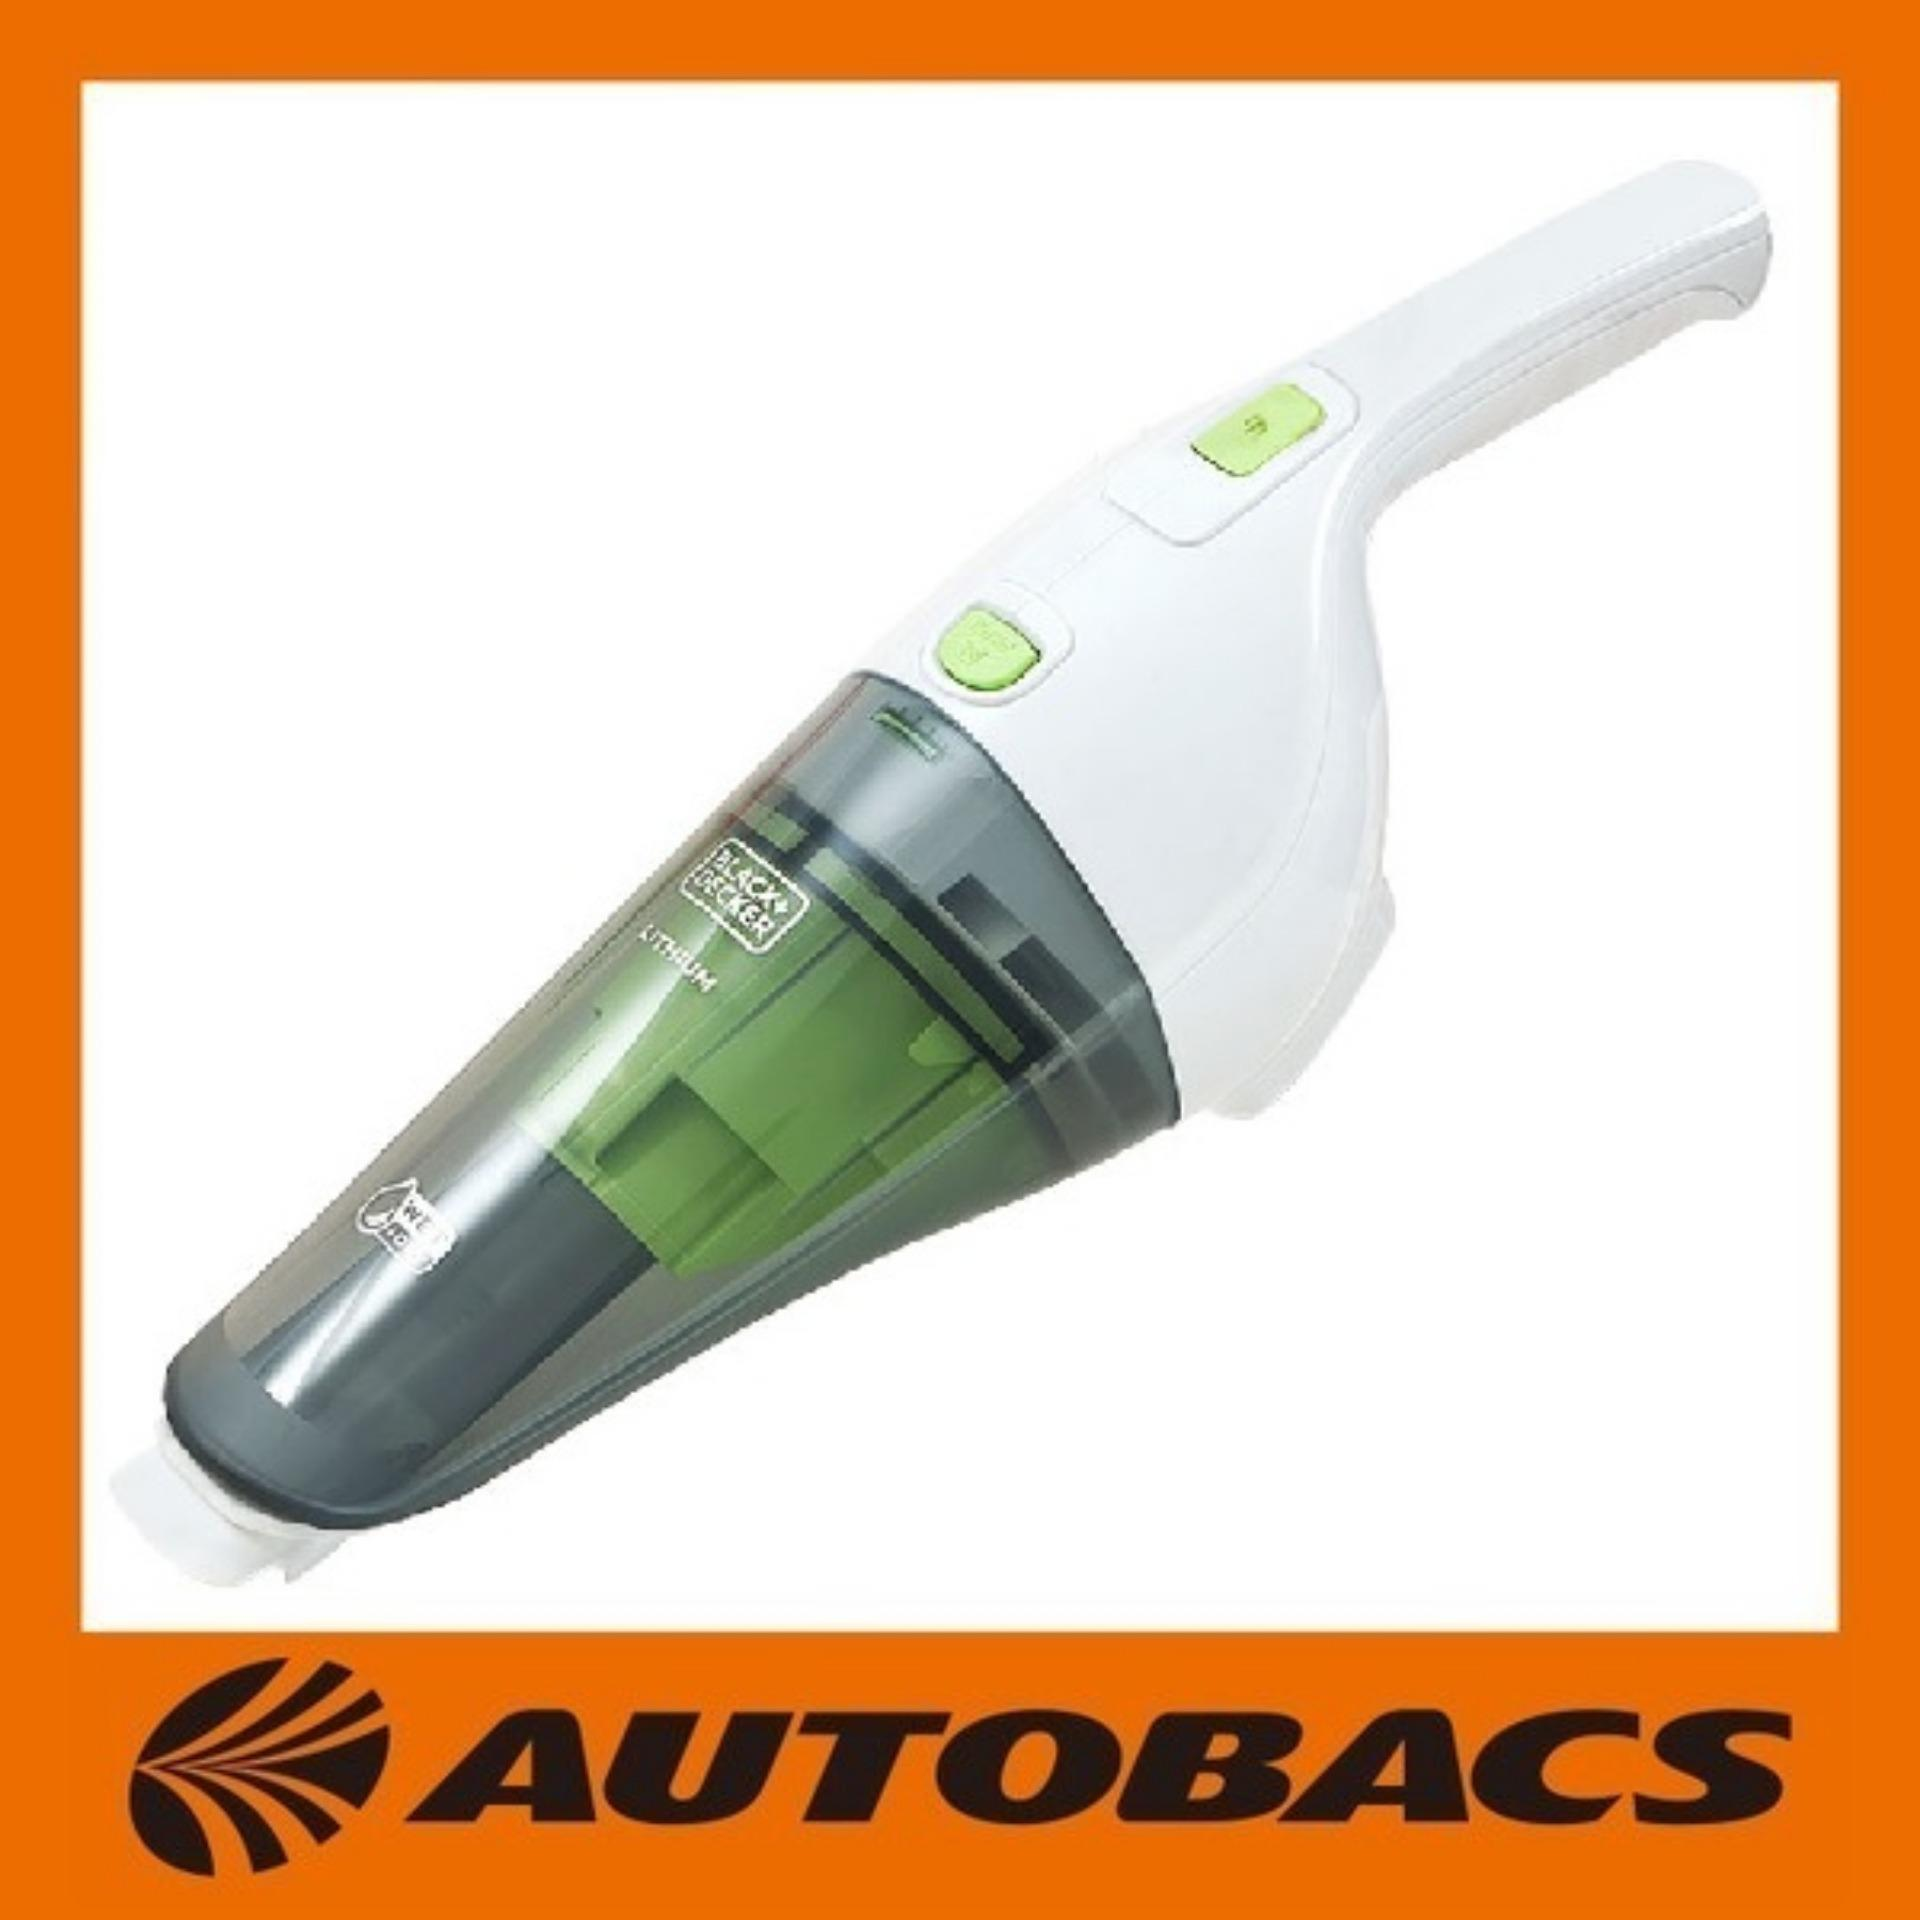 The Cheapest Black Decker Portable Car Wet Dry Cyclonic Dustbuster Wd7201G Online